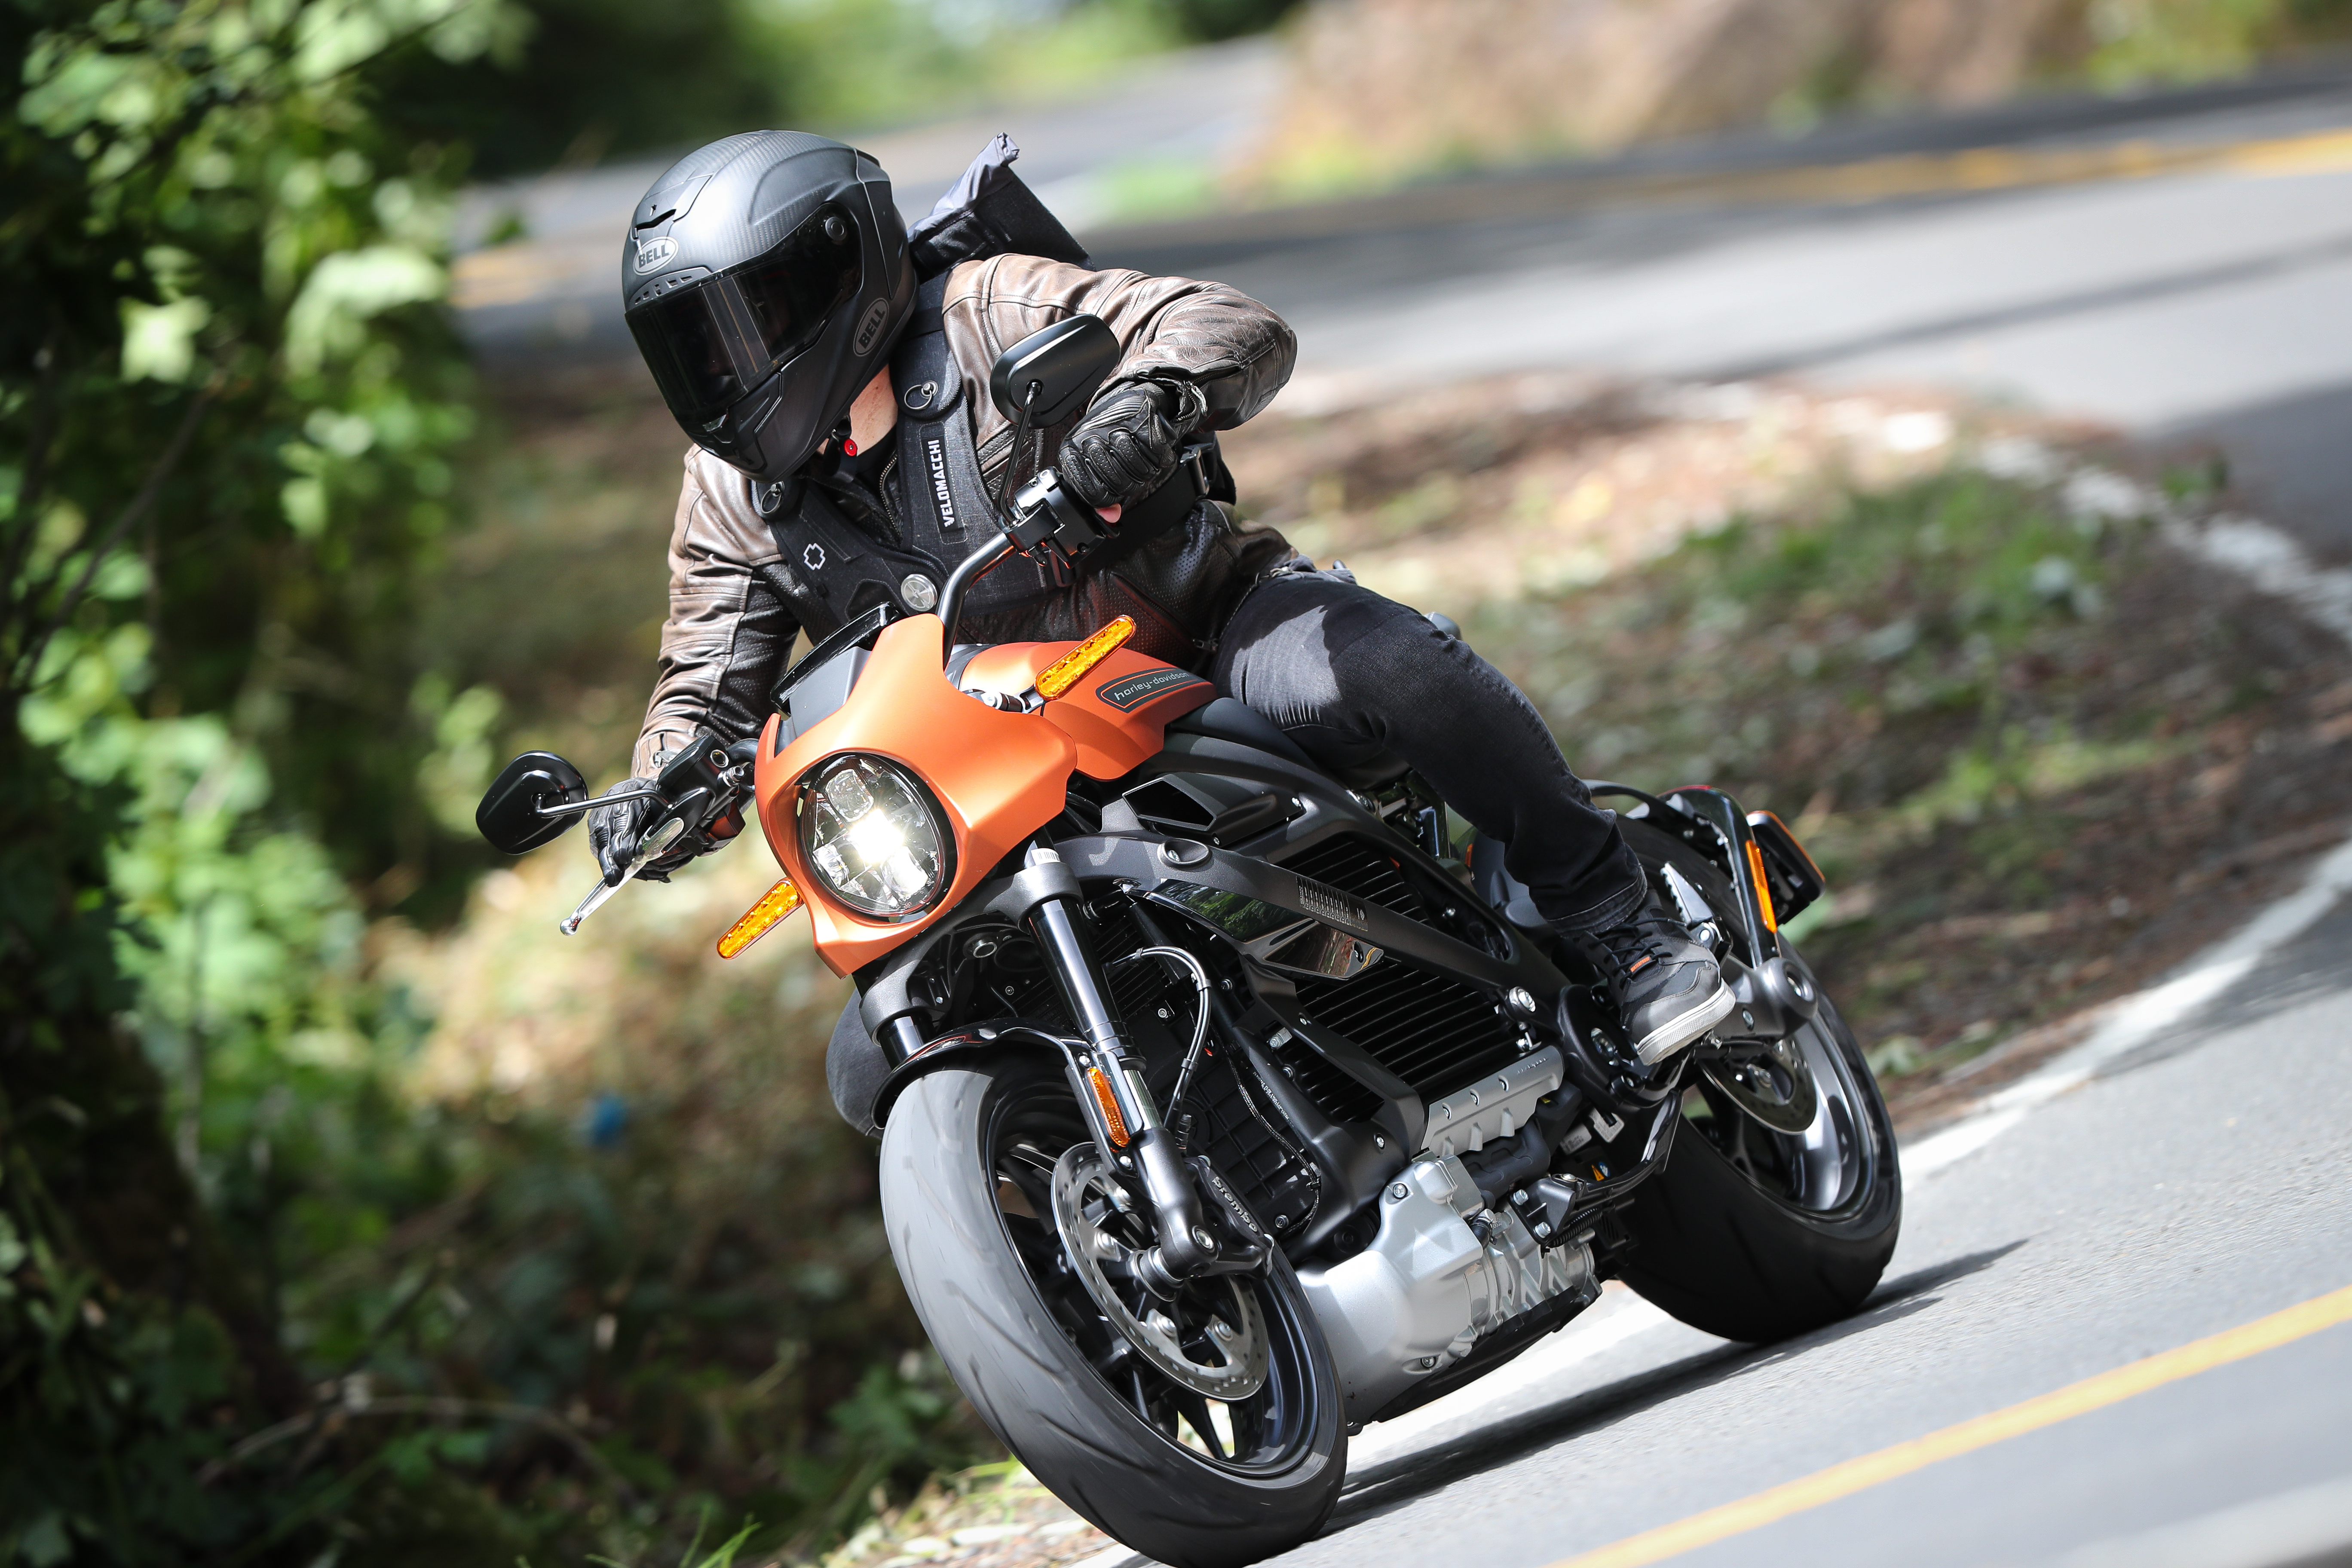 Review: Harley-Davidson's First Electric Motorcycle, the LiveWire